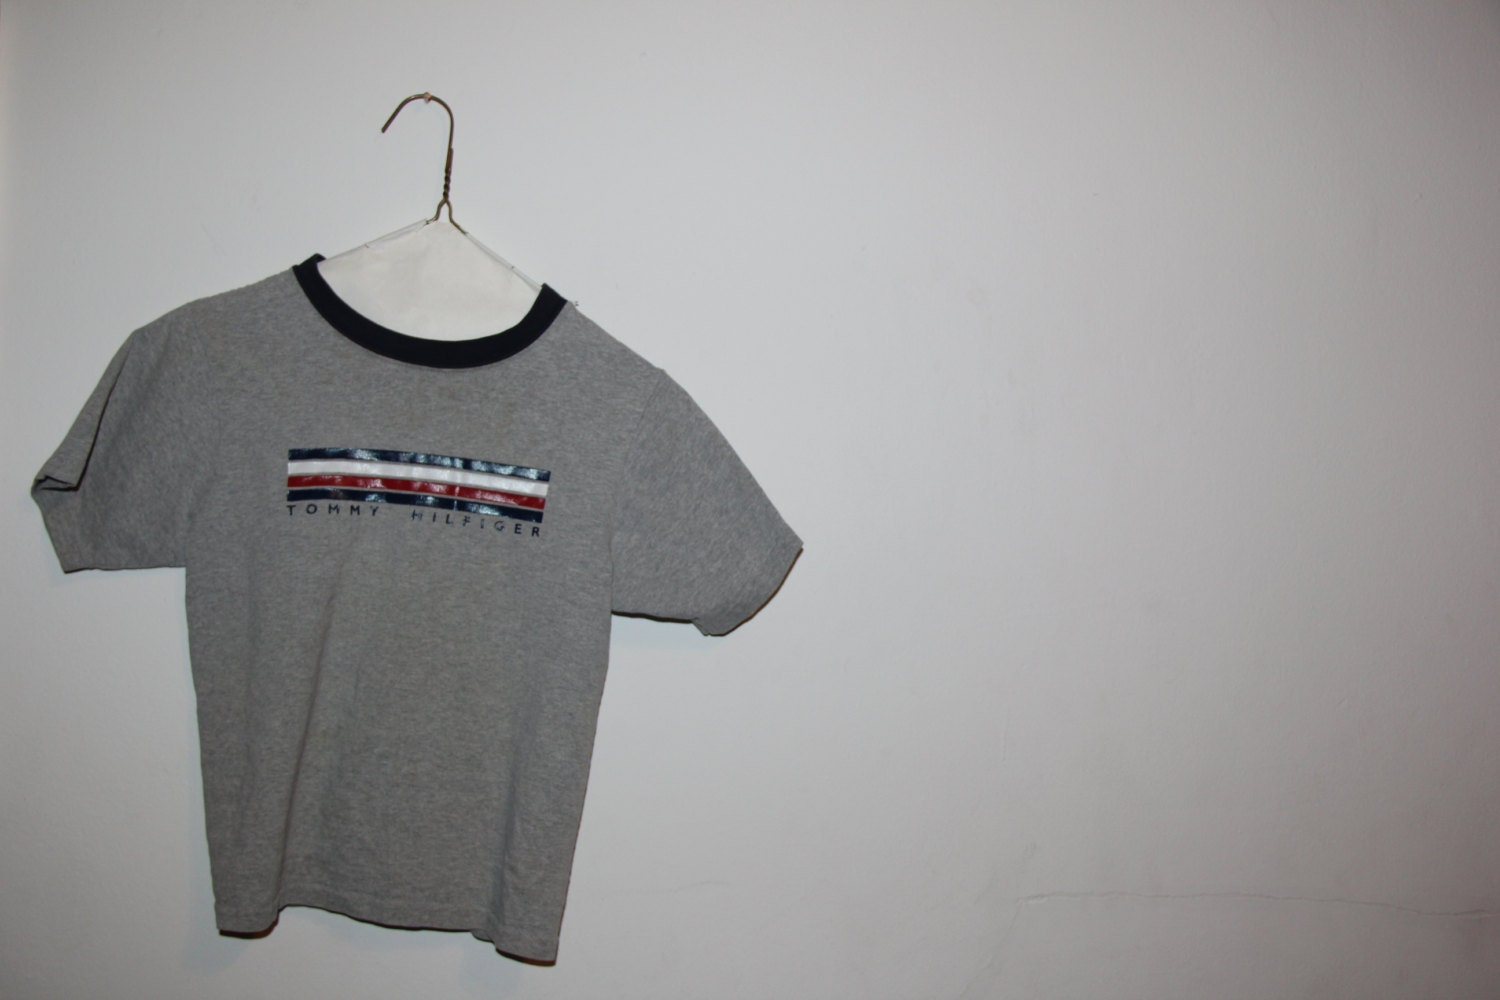 tommy hilfiger 90s t shirt by beanqueen615 on etsy. Black Bedroom Furniture Sets. Home Design Ideas